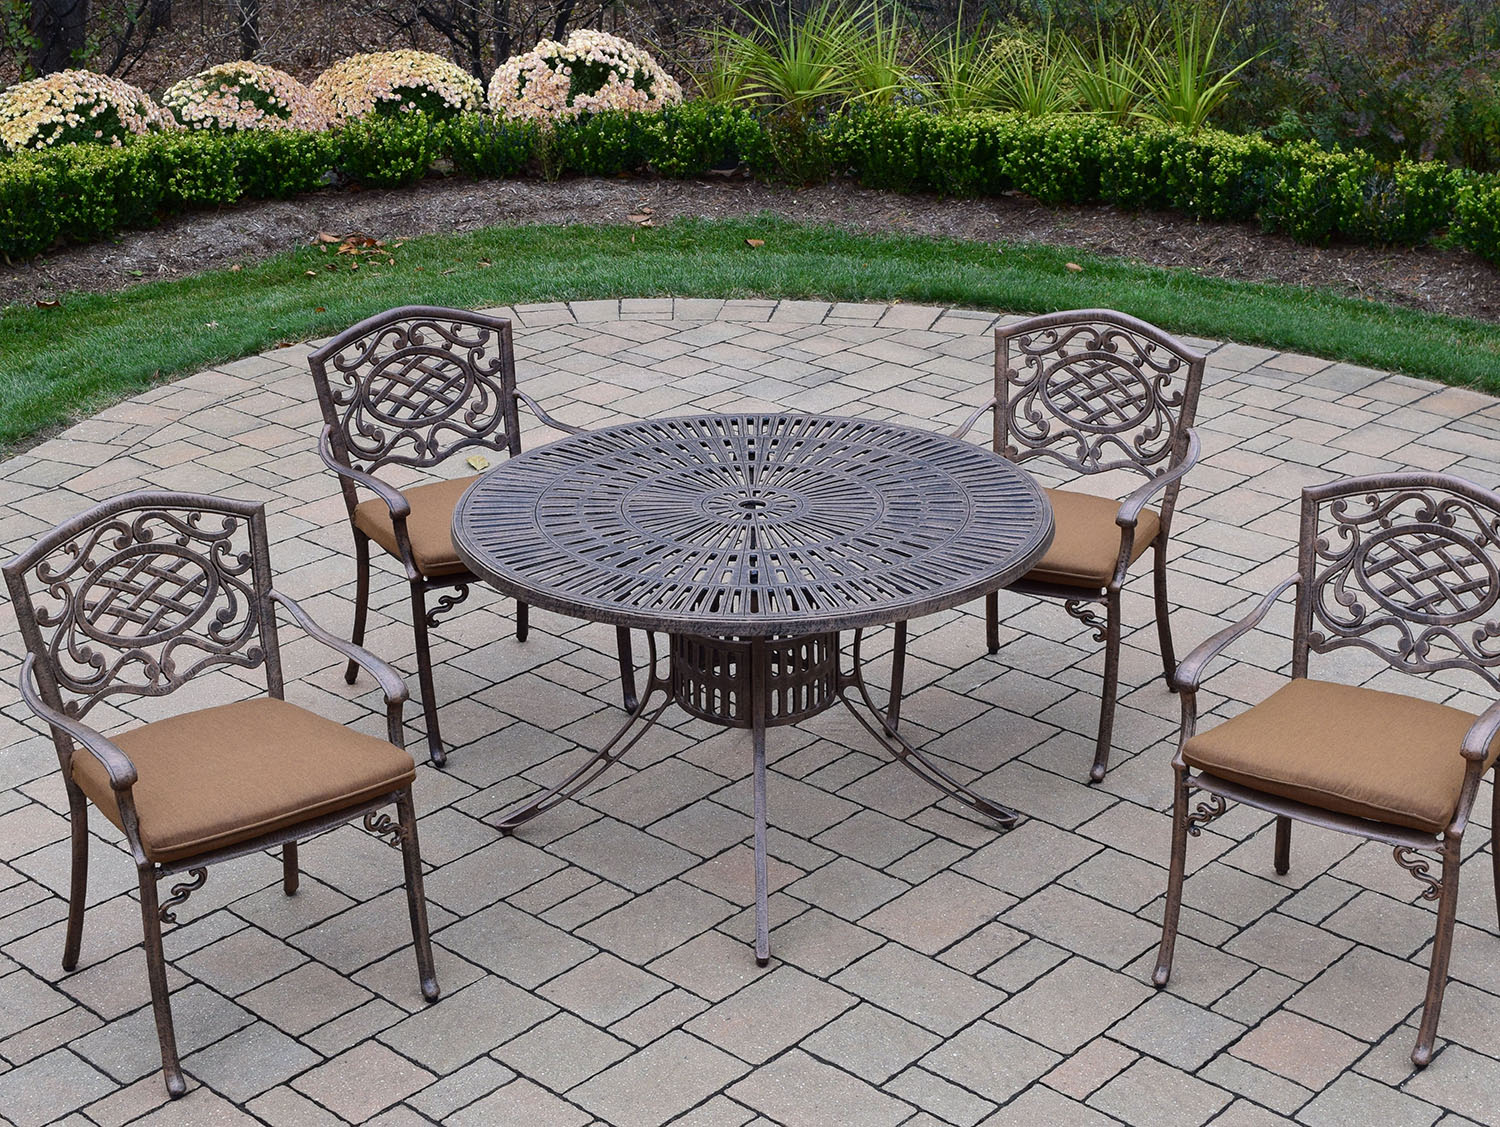 Best-selling Sunray Antique Bronze Dining Set Cushions 8 865